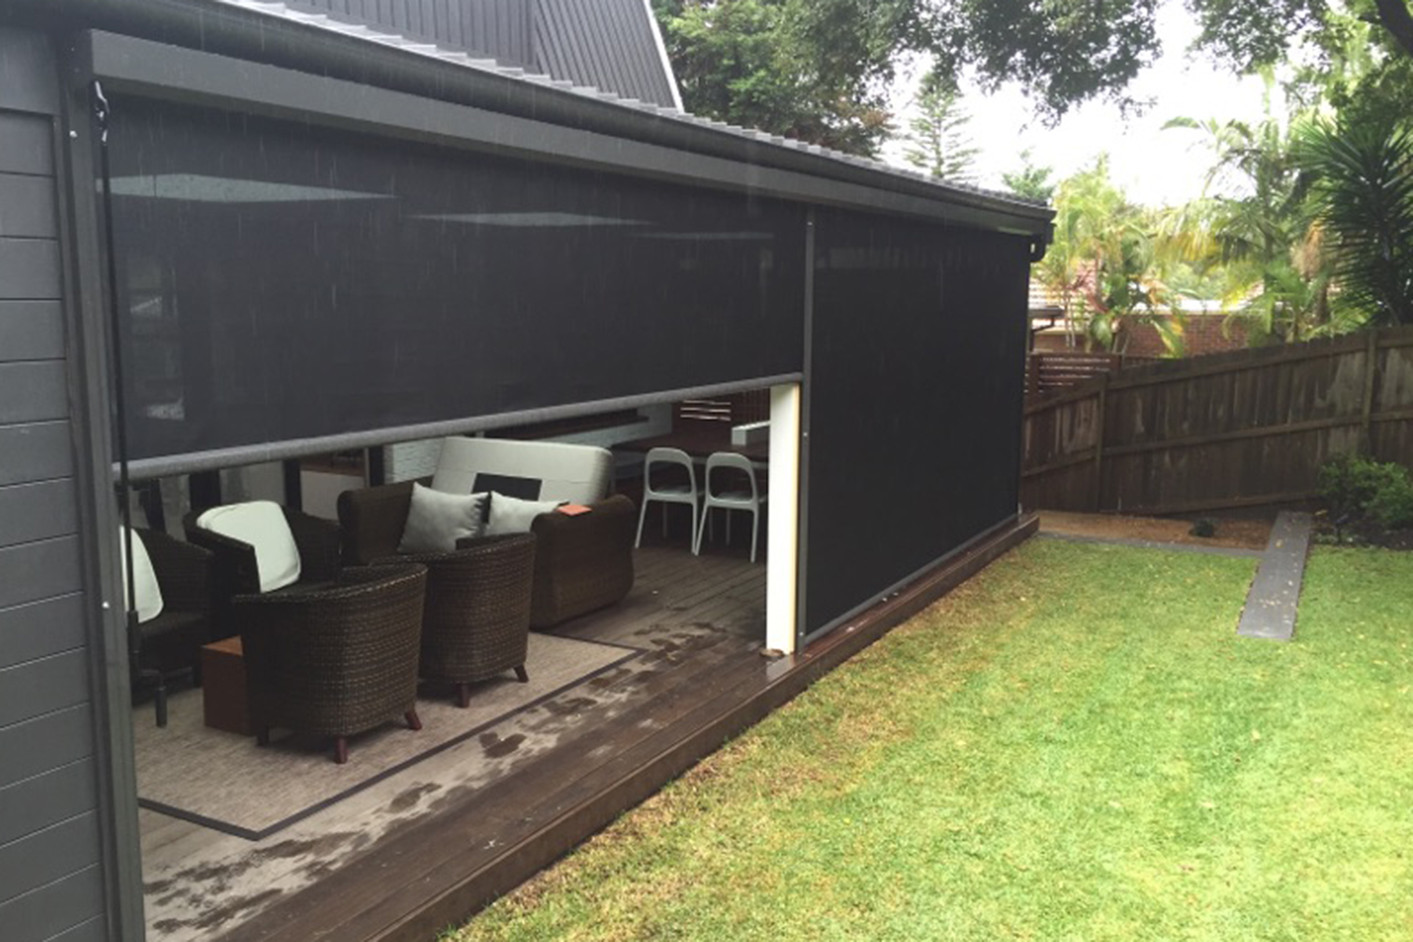 Outdoor blinds for entertaining areas | Cafe blinds and vertiscreens for patios and decks